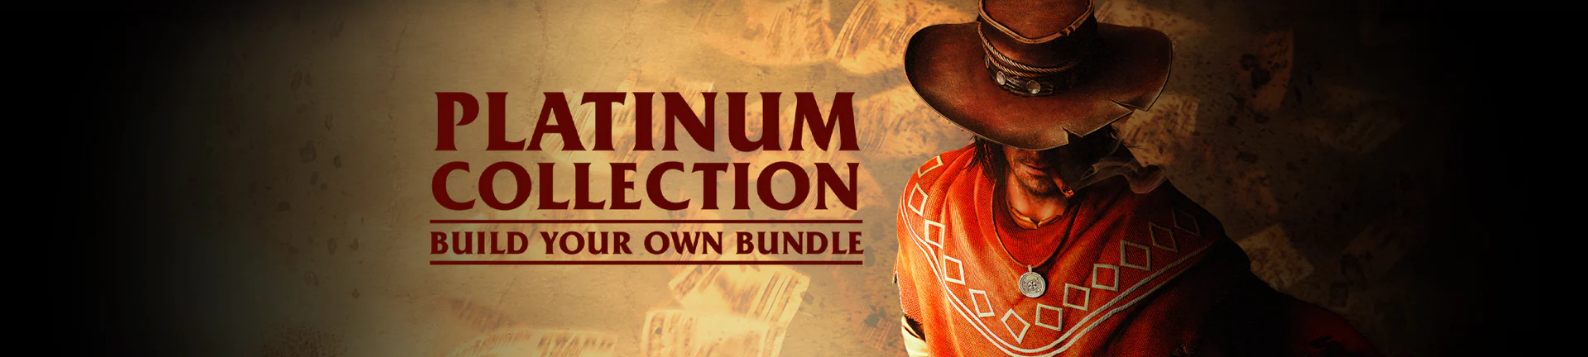 Screenshot_2020-11-12 Fanatical Platinum Collection - Build your own Bundle (Nov Dec).png